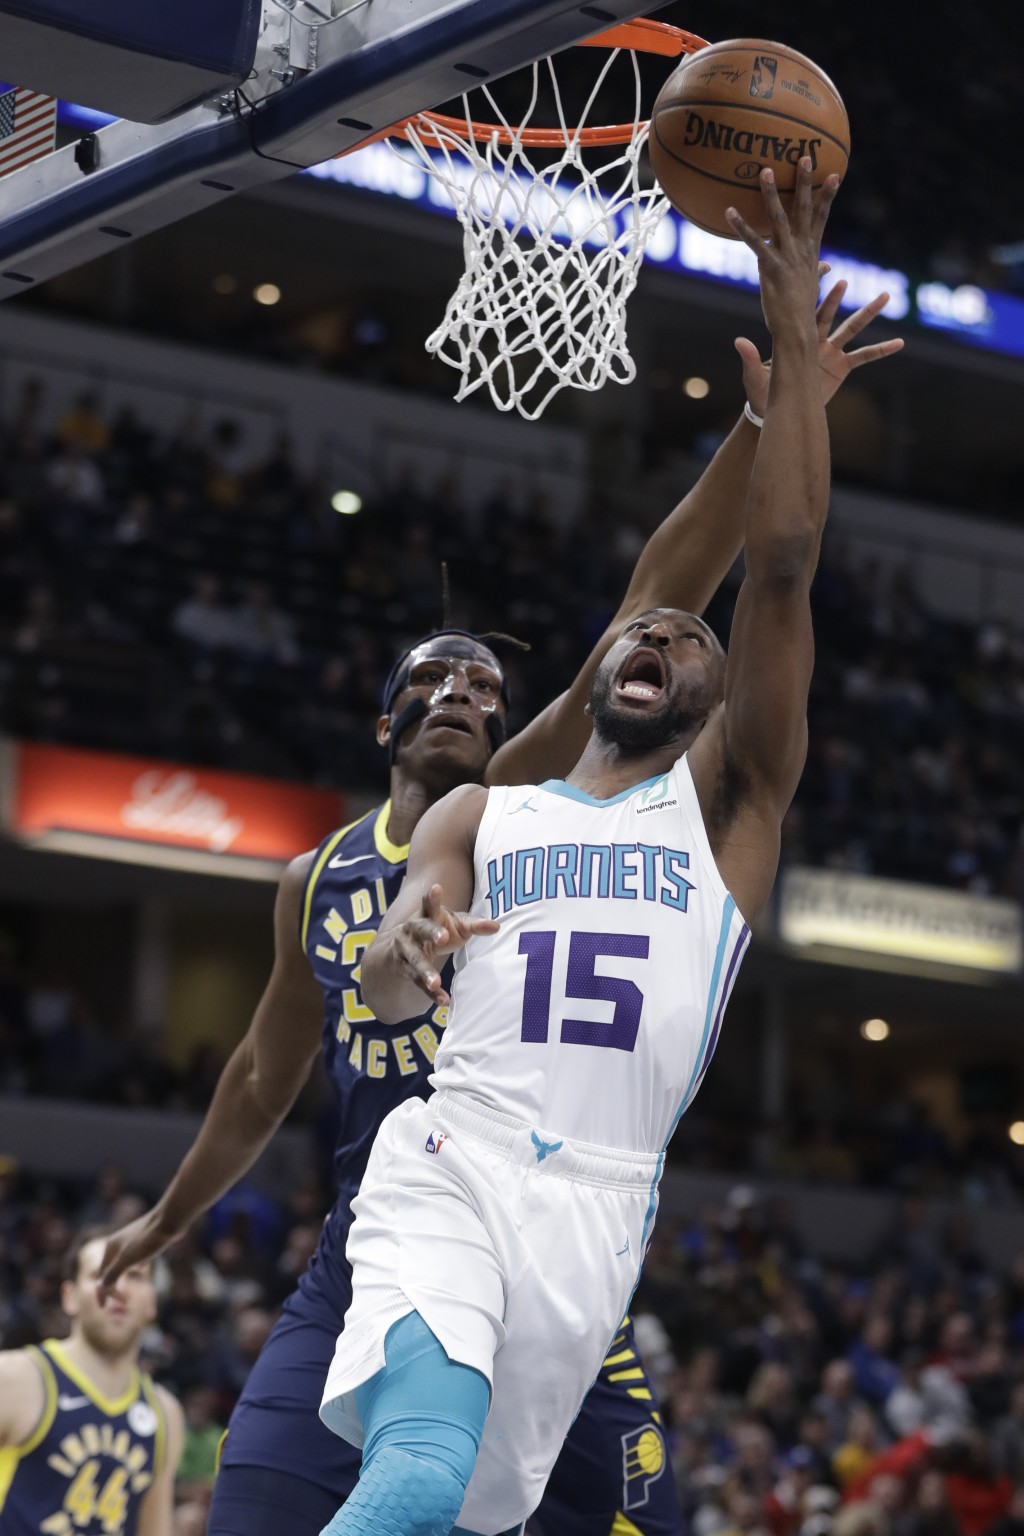 Charlotte Hornets' Kemba Walker, right, puts up a shot against Indiana Pacers' Myles Turner, left, during the first half of an NBA basketball game, Mo...